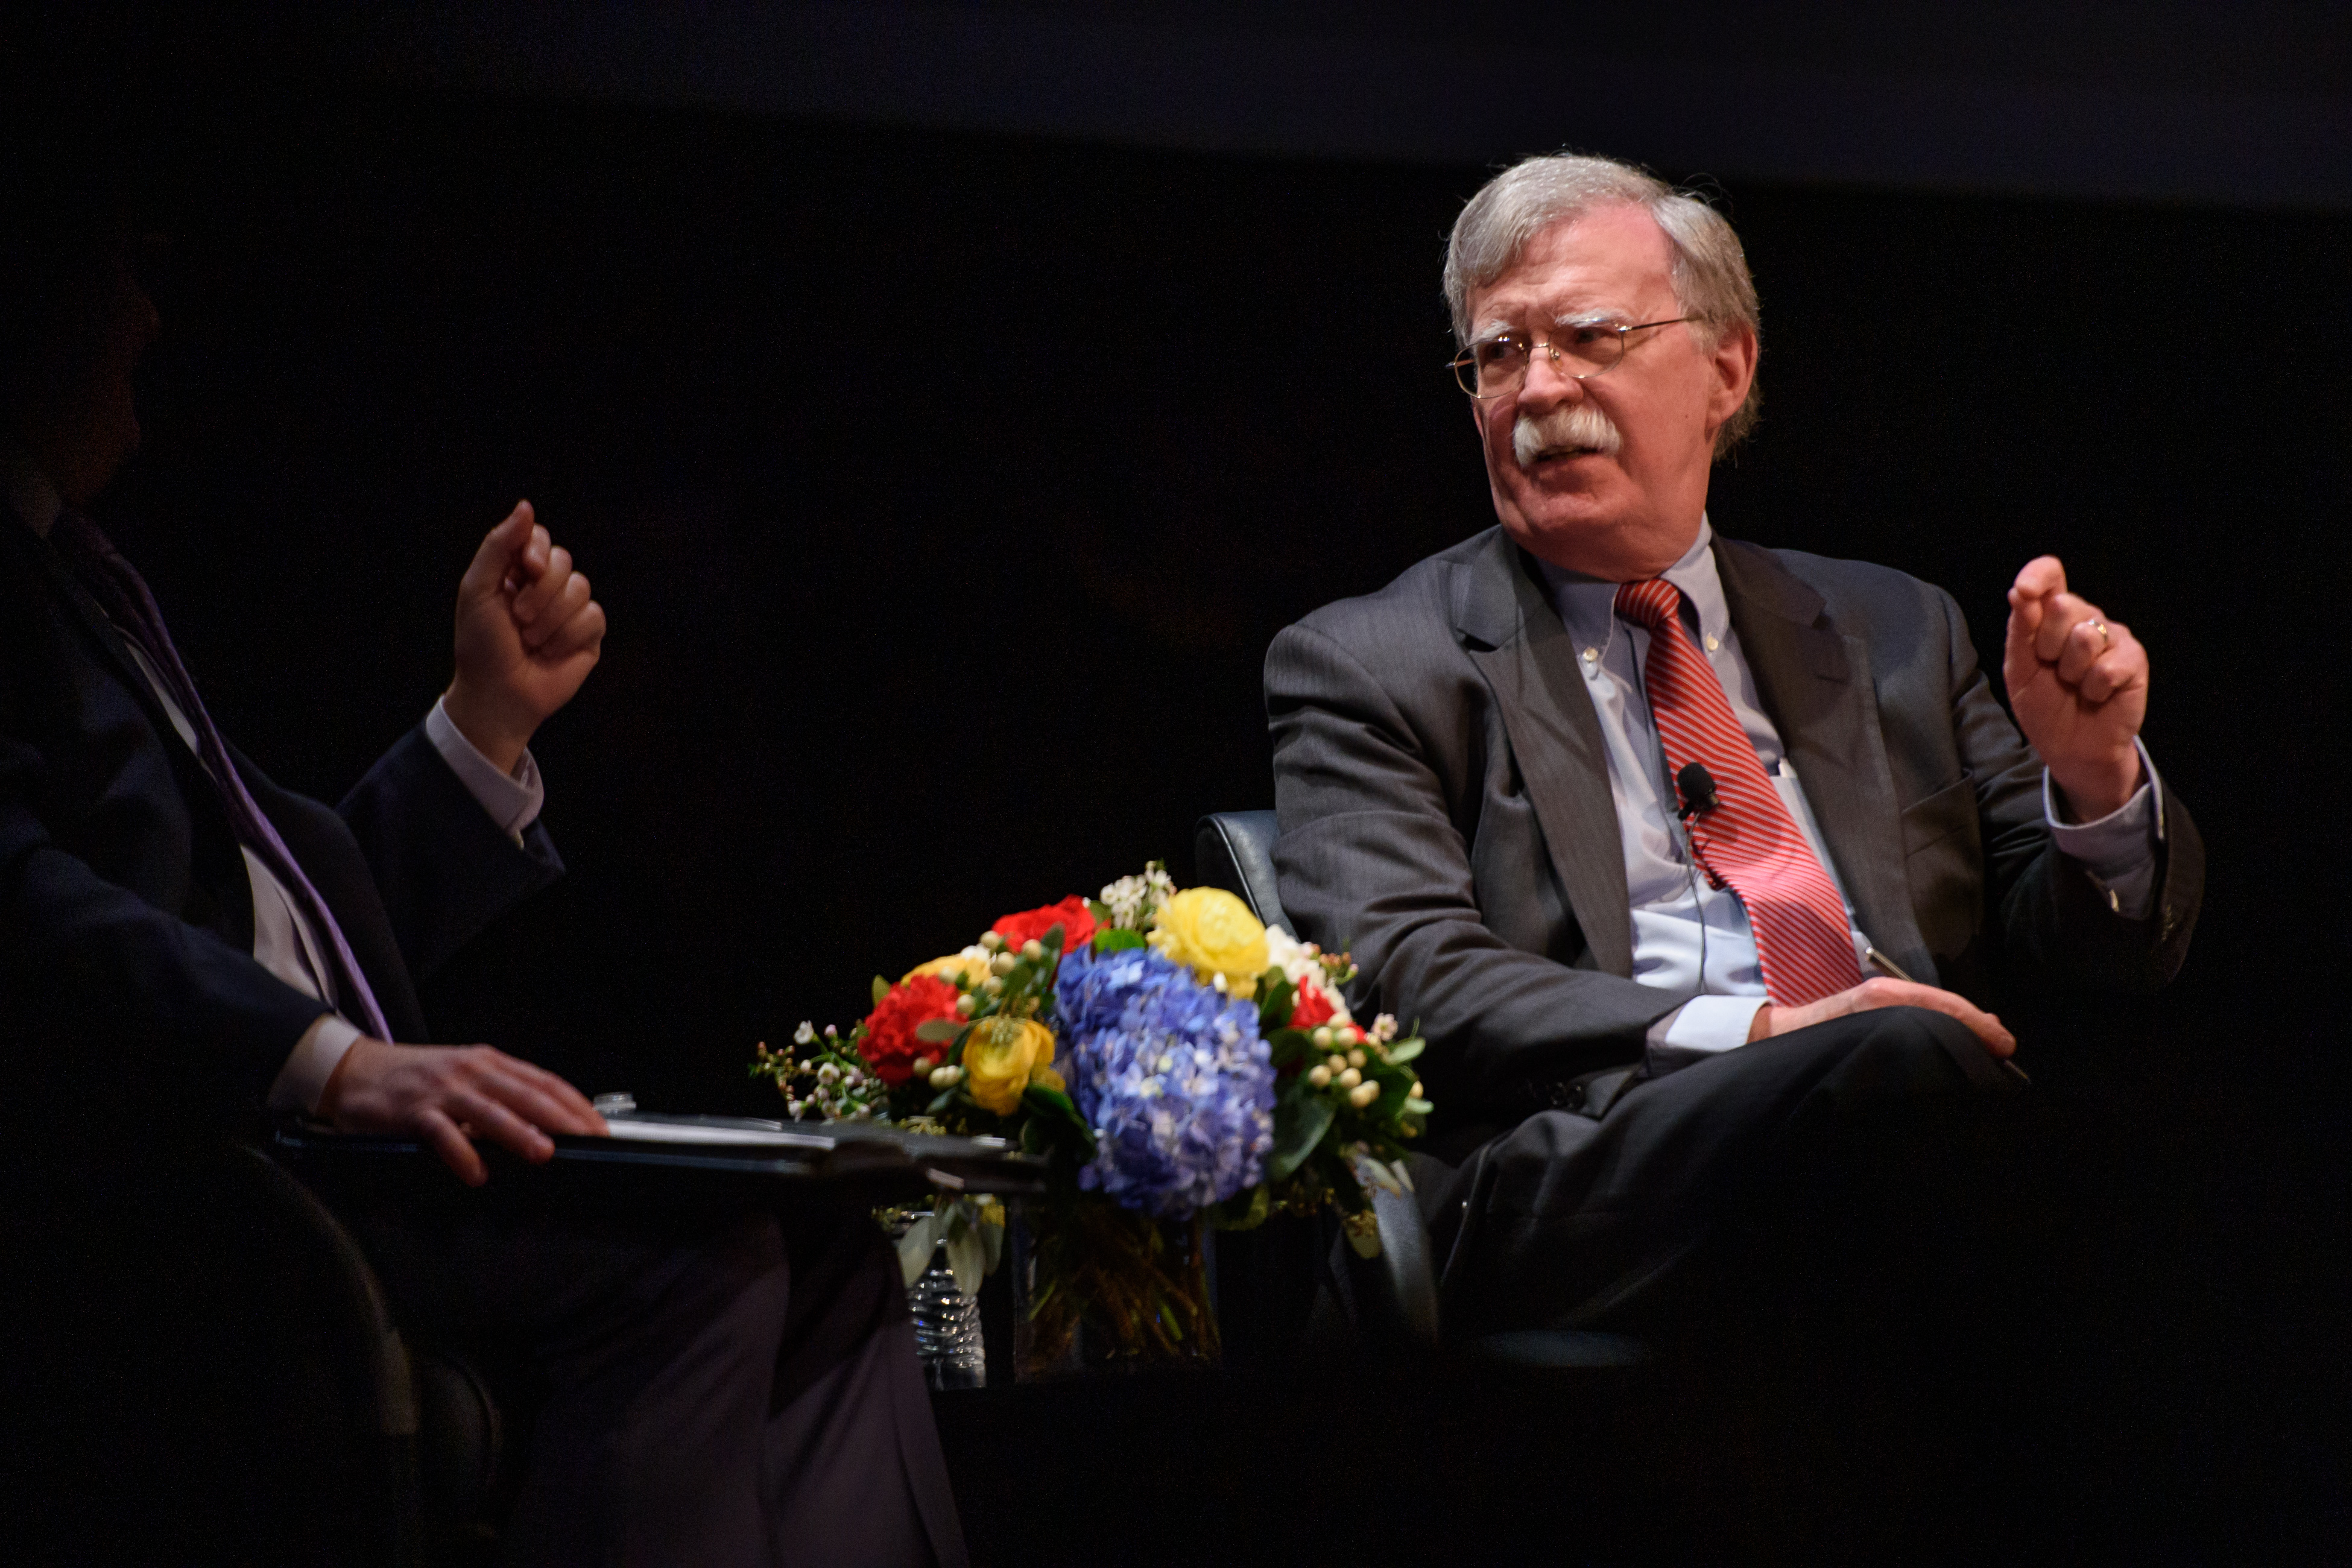 Second Trump Term Puts NATO 'Very Much in Jeopardy,' John Bolton Says